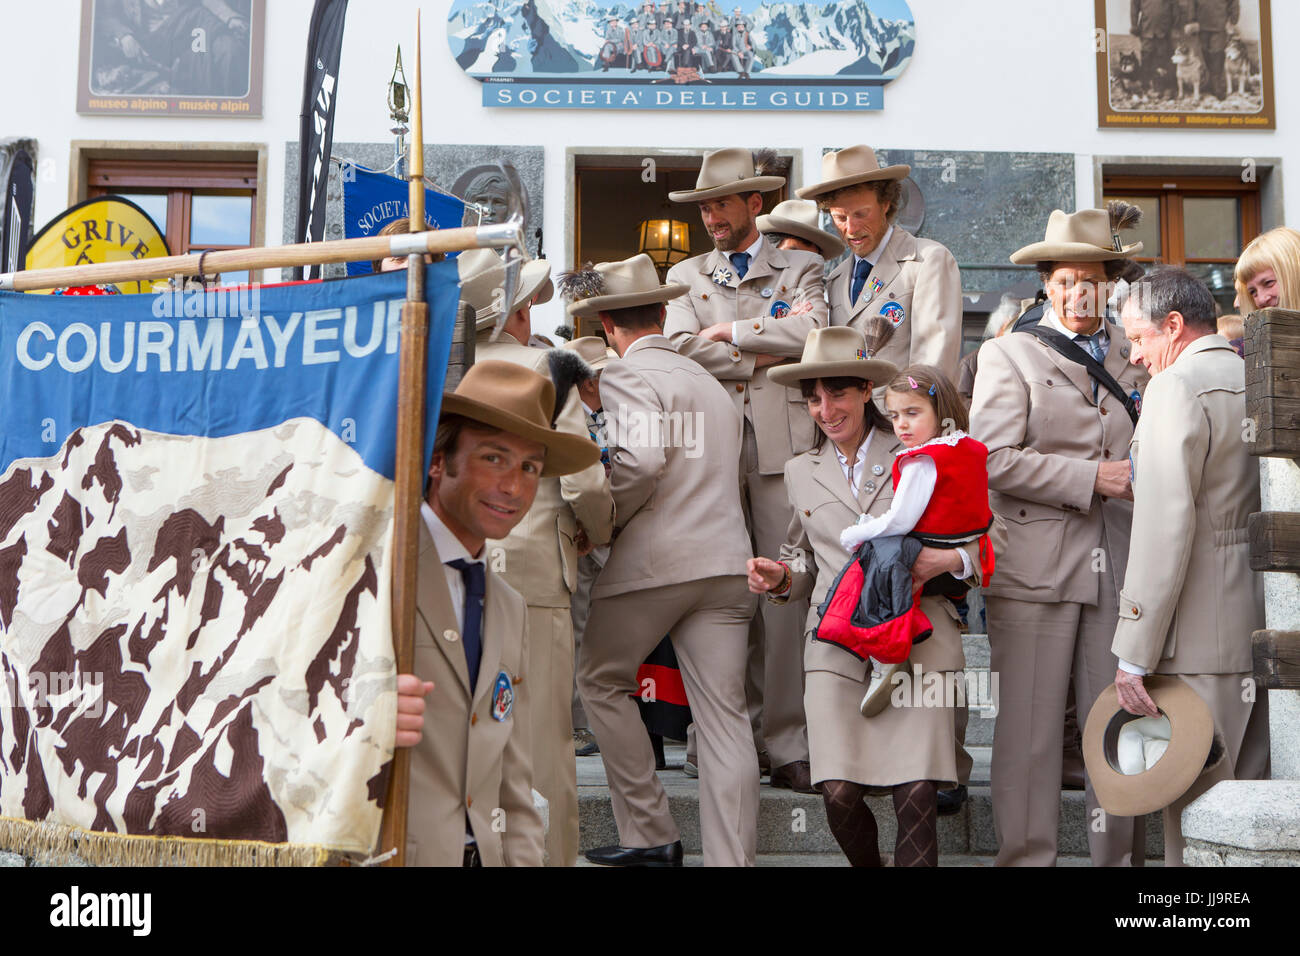 A group of Italian mountain guides are dressed in traditional clothing of the Guide Alpine Courmayeur for a parade Stock Photo